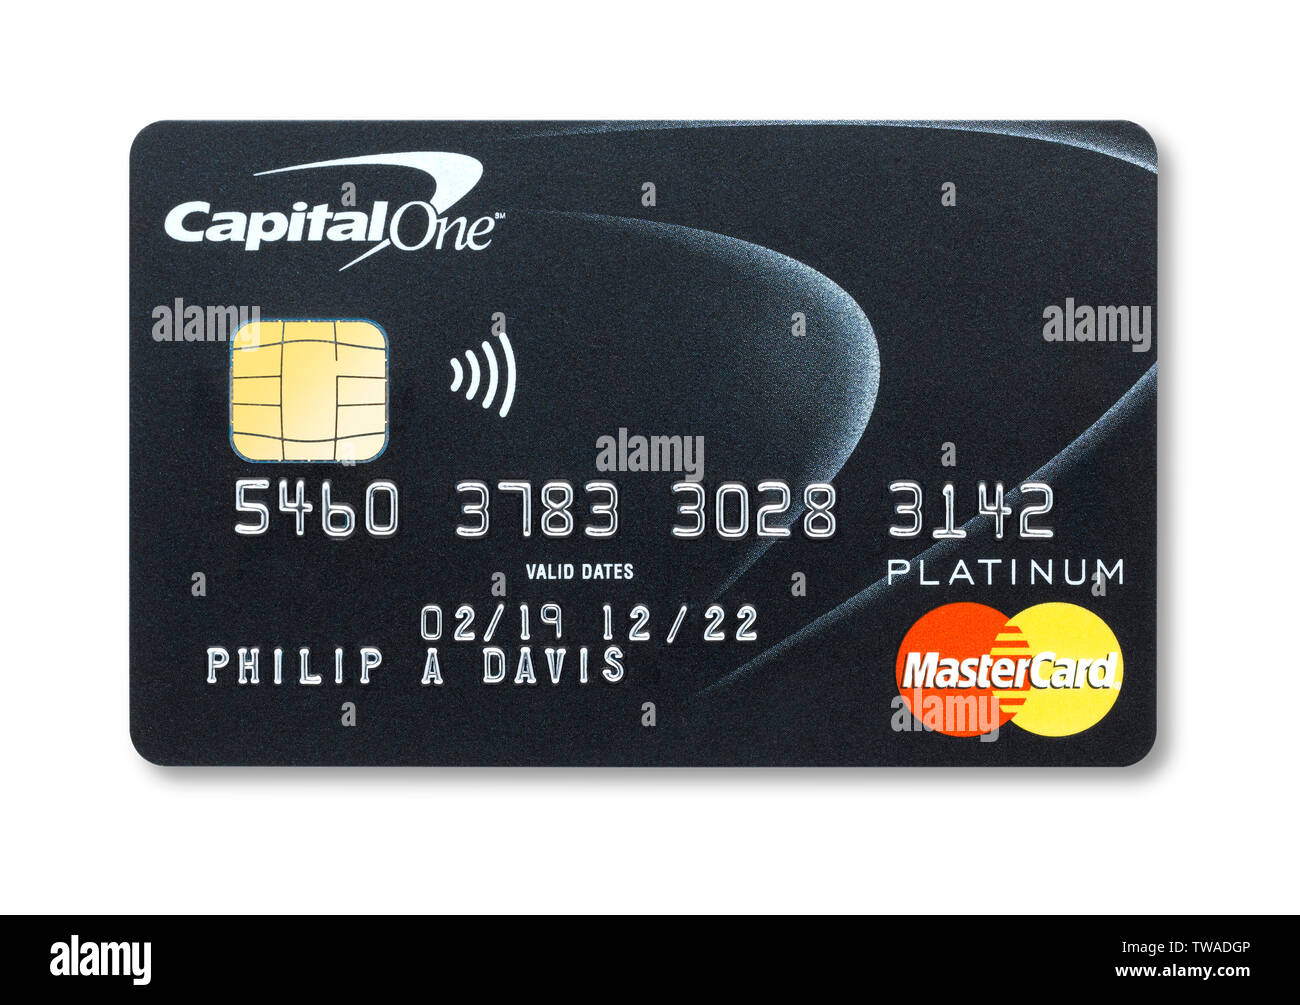 capital one credit card atm withdrawal fee